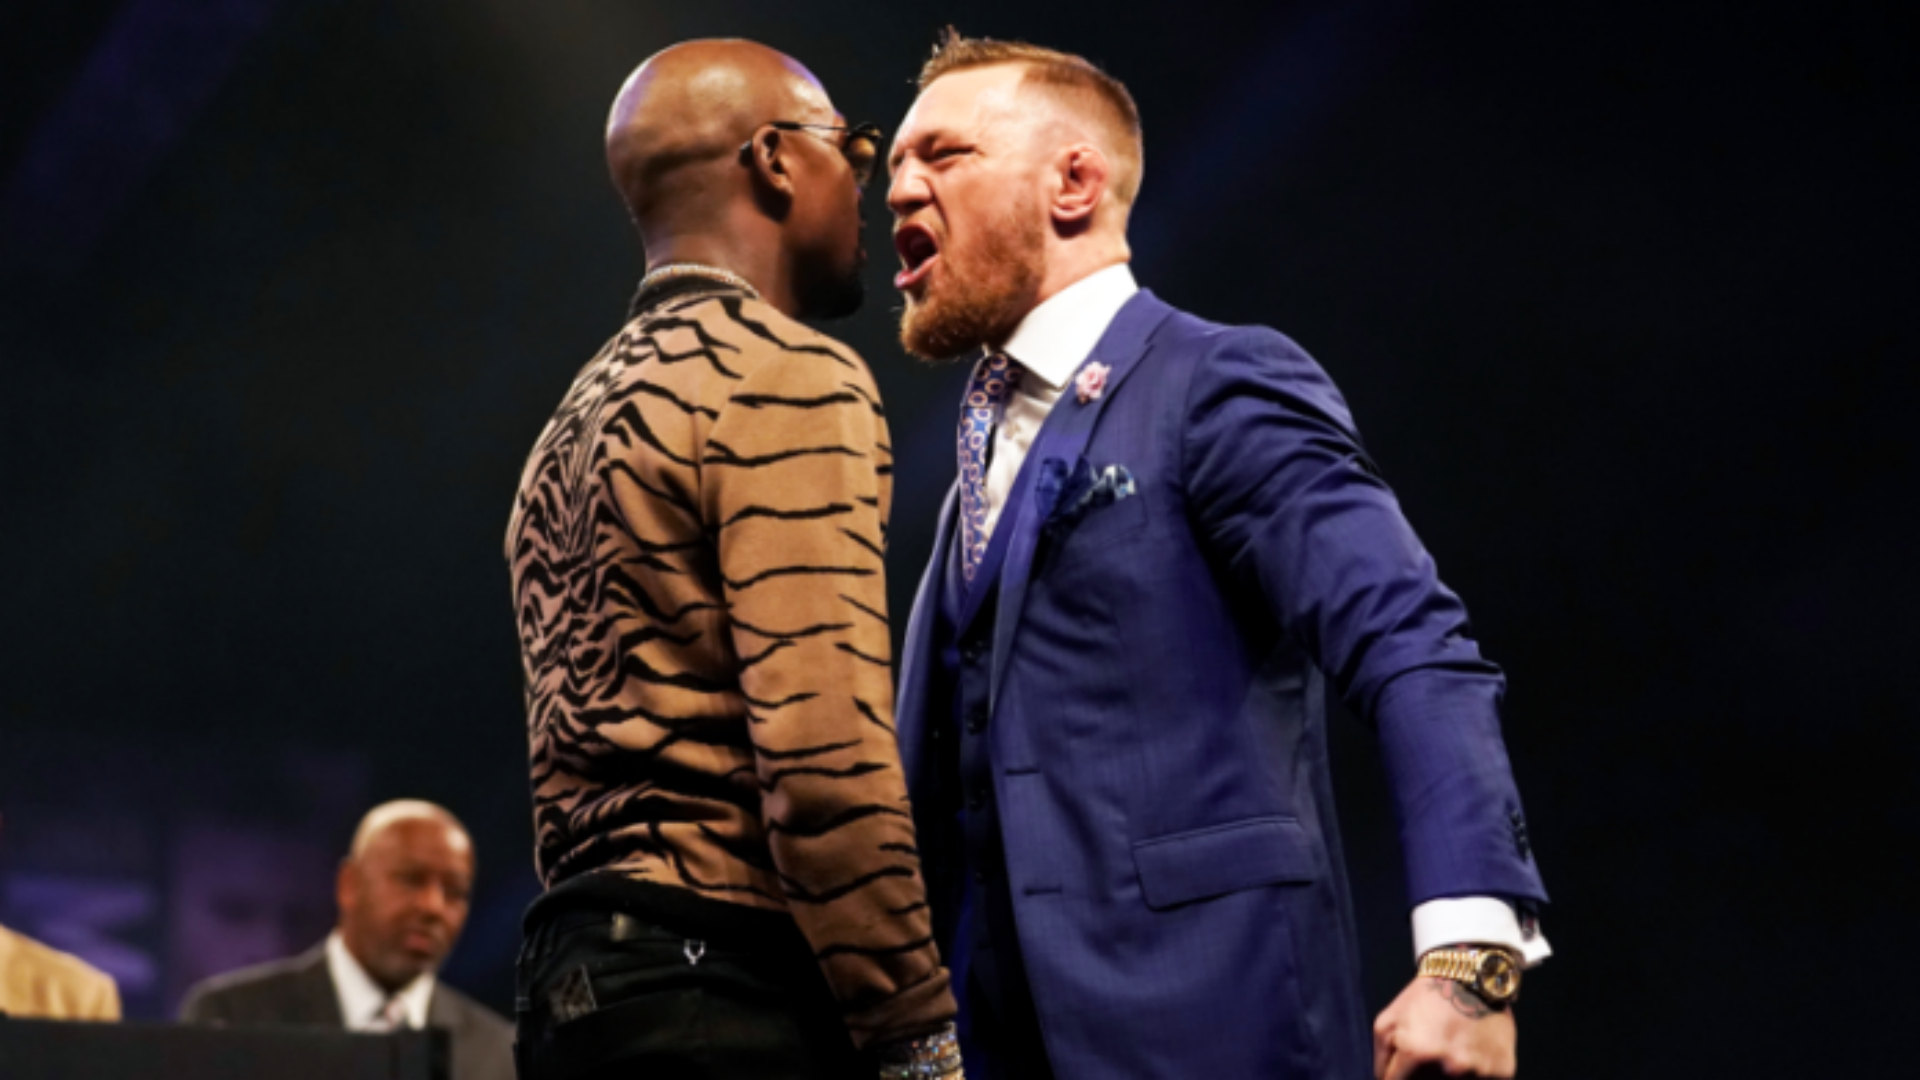 Floyd Mayweather wants a ridiculous pay-per-view fee for McGregor bout